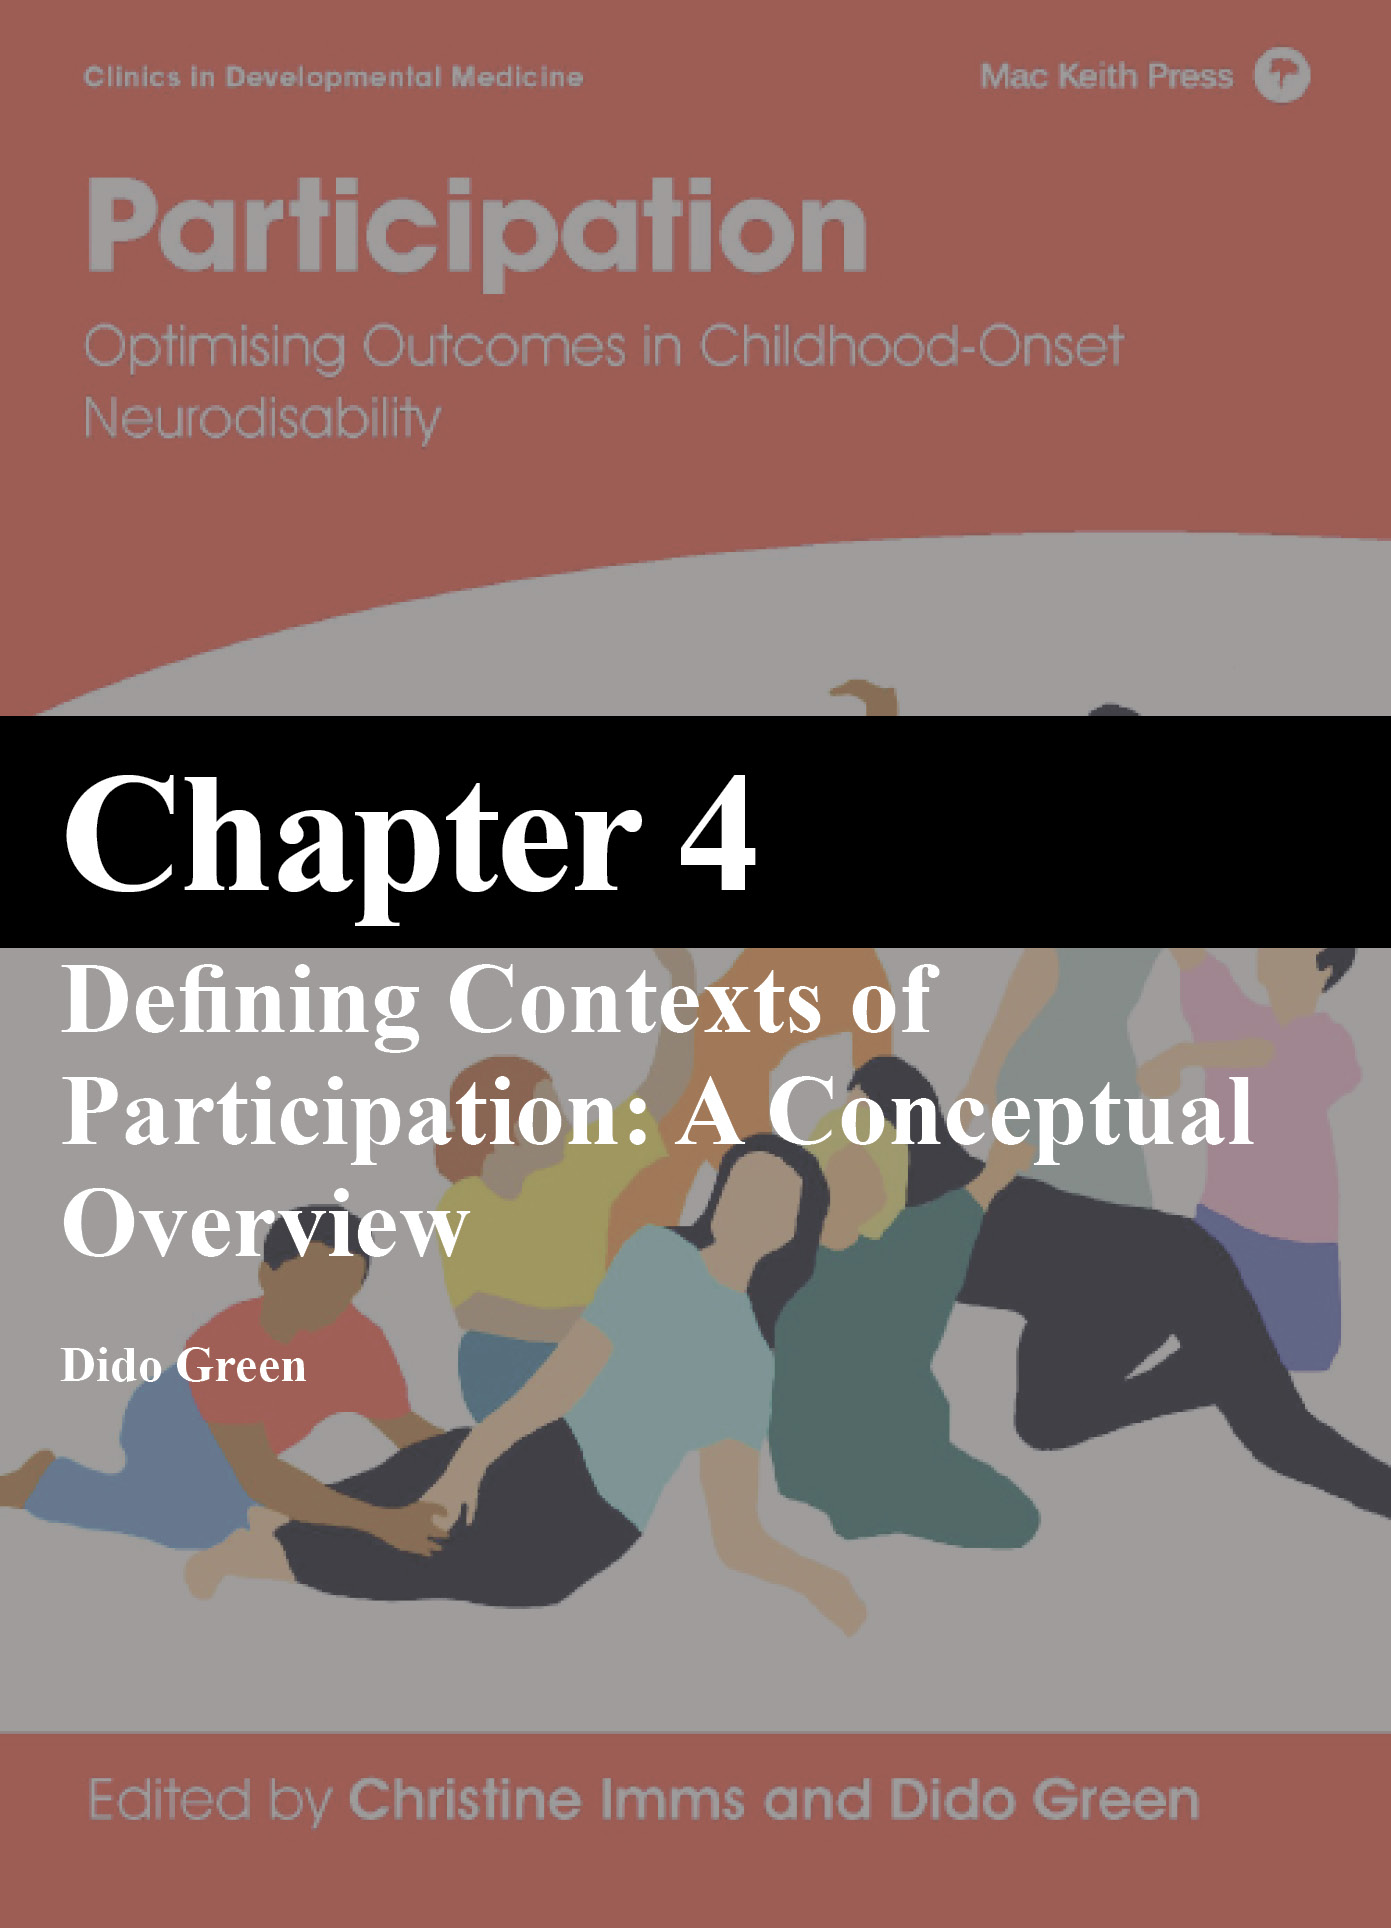 Participation Chapter 4 Imms Green